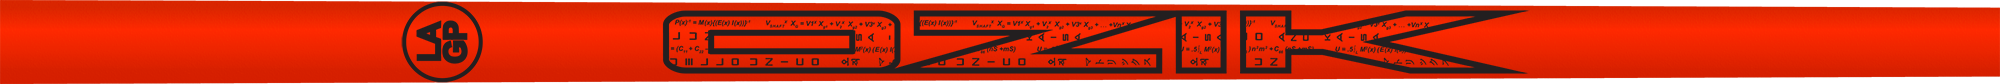 Ozik White Tie: Ferrari Red Black Matte - Wood 50 S